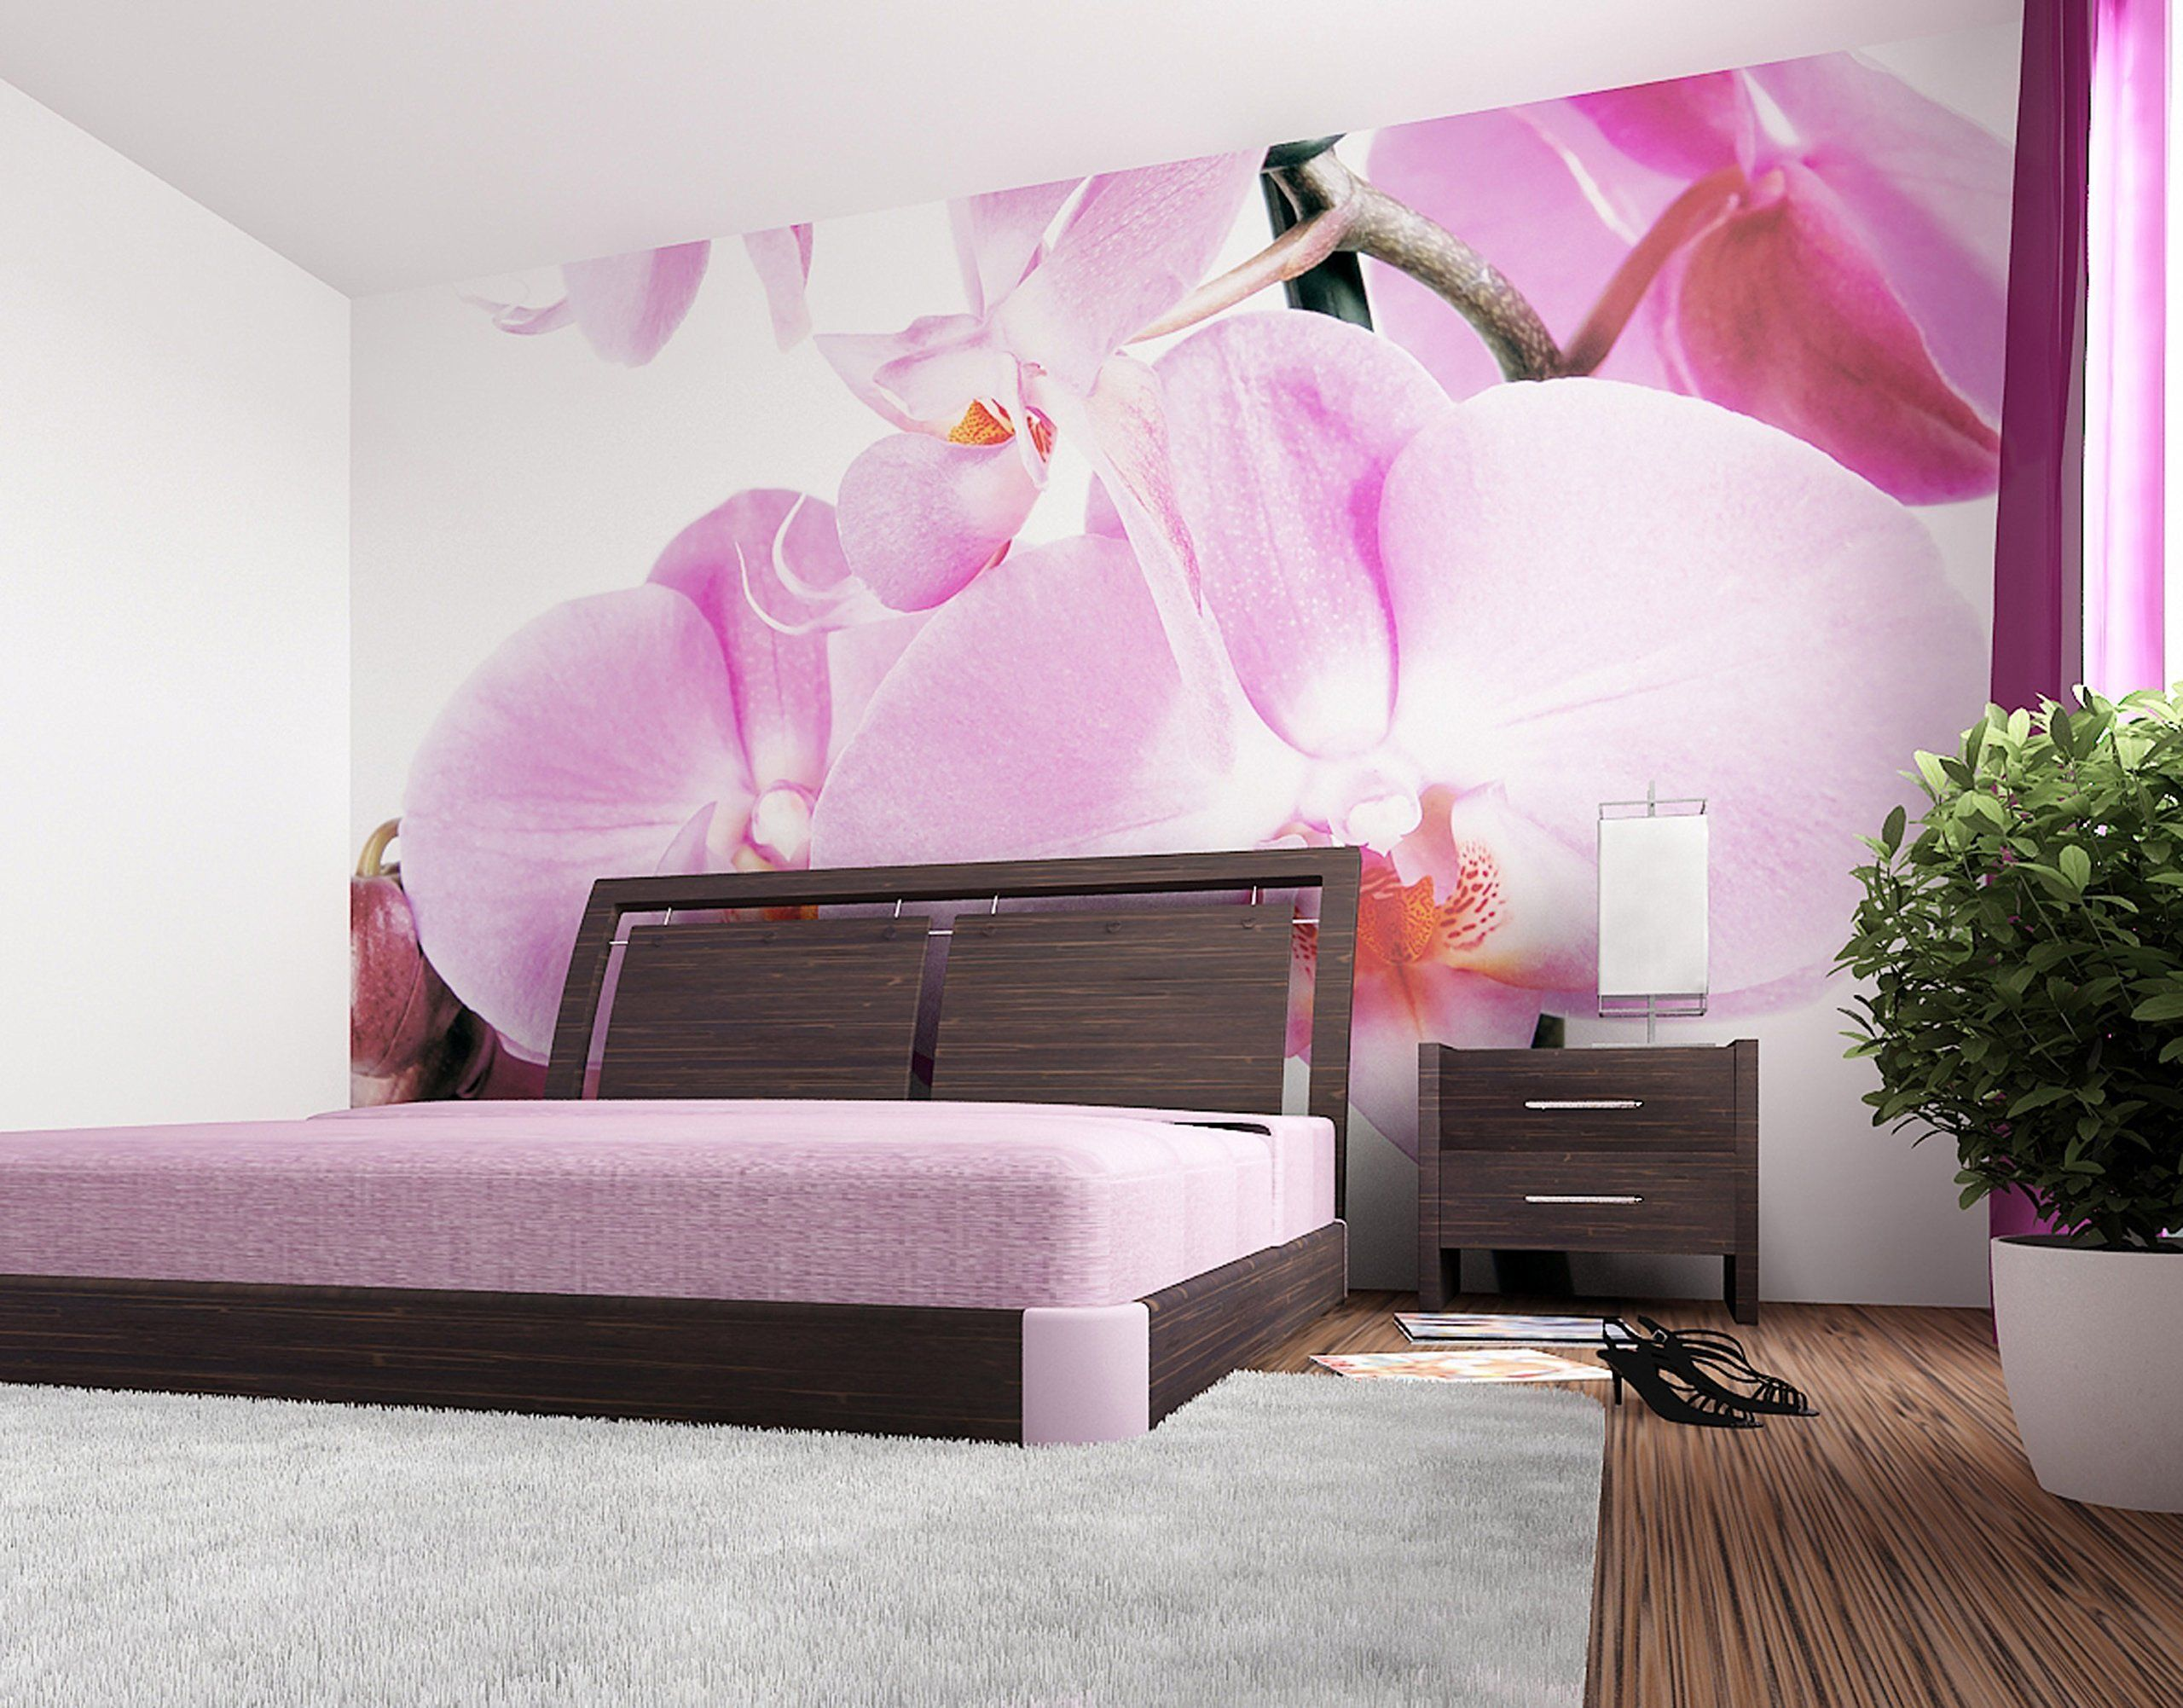 Wall Mural For Living Room Wallandmore Giant Nature Floral Wall Decal Mural For Living Room